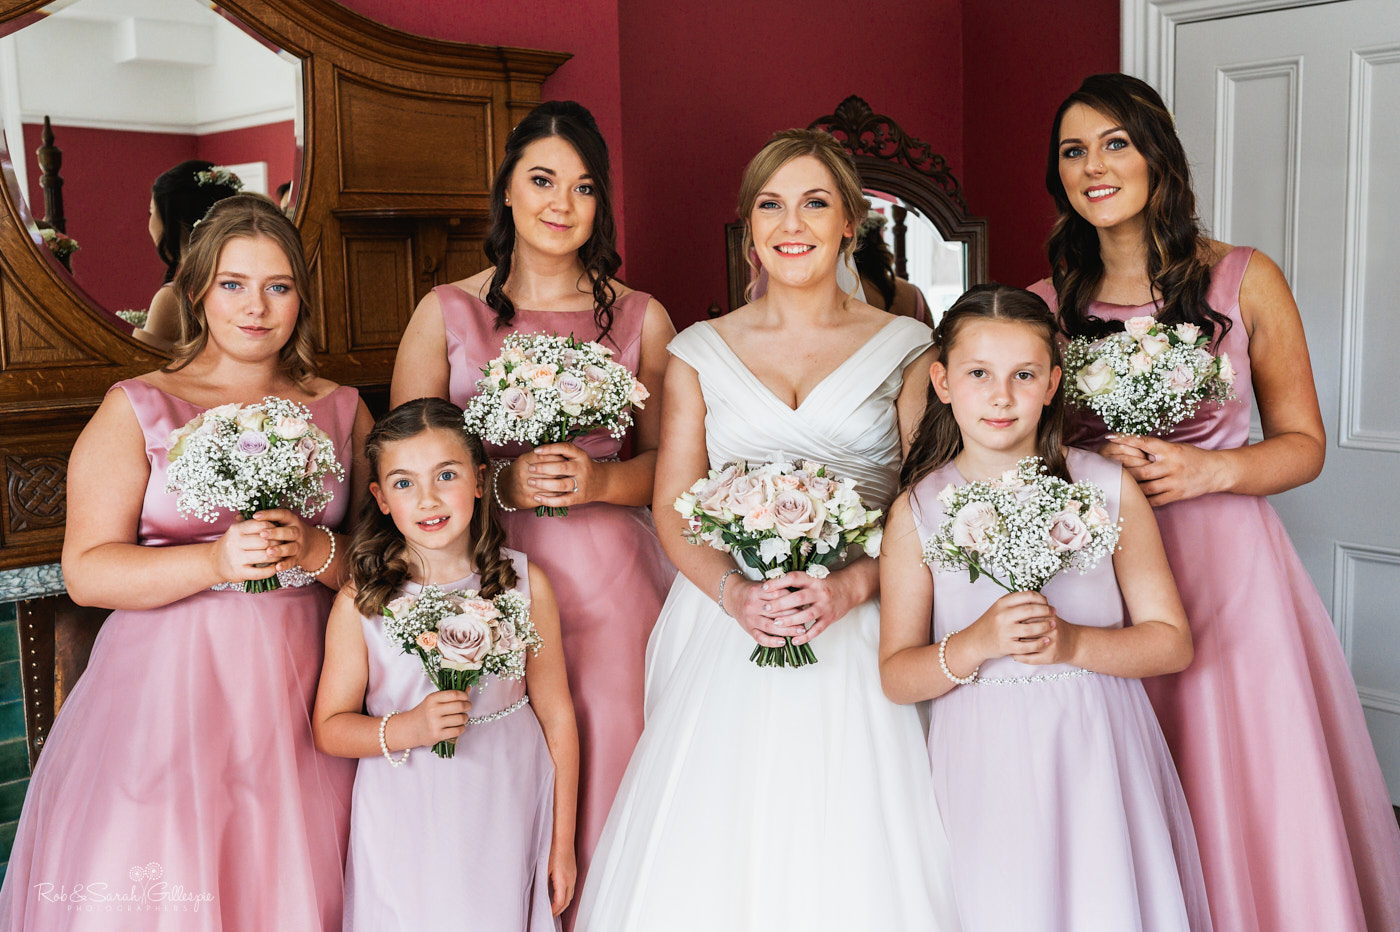 Bride and bridesmaids group photo at Pendrell Hall